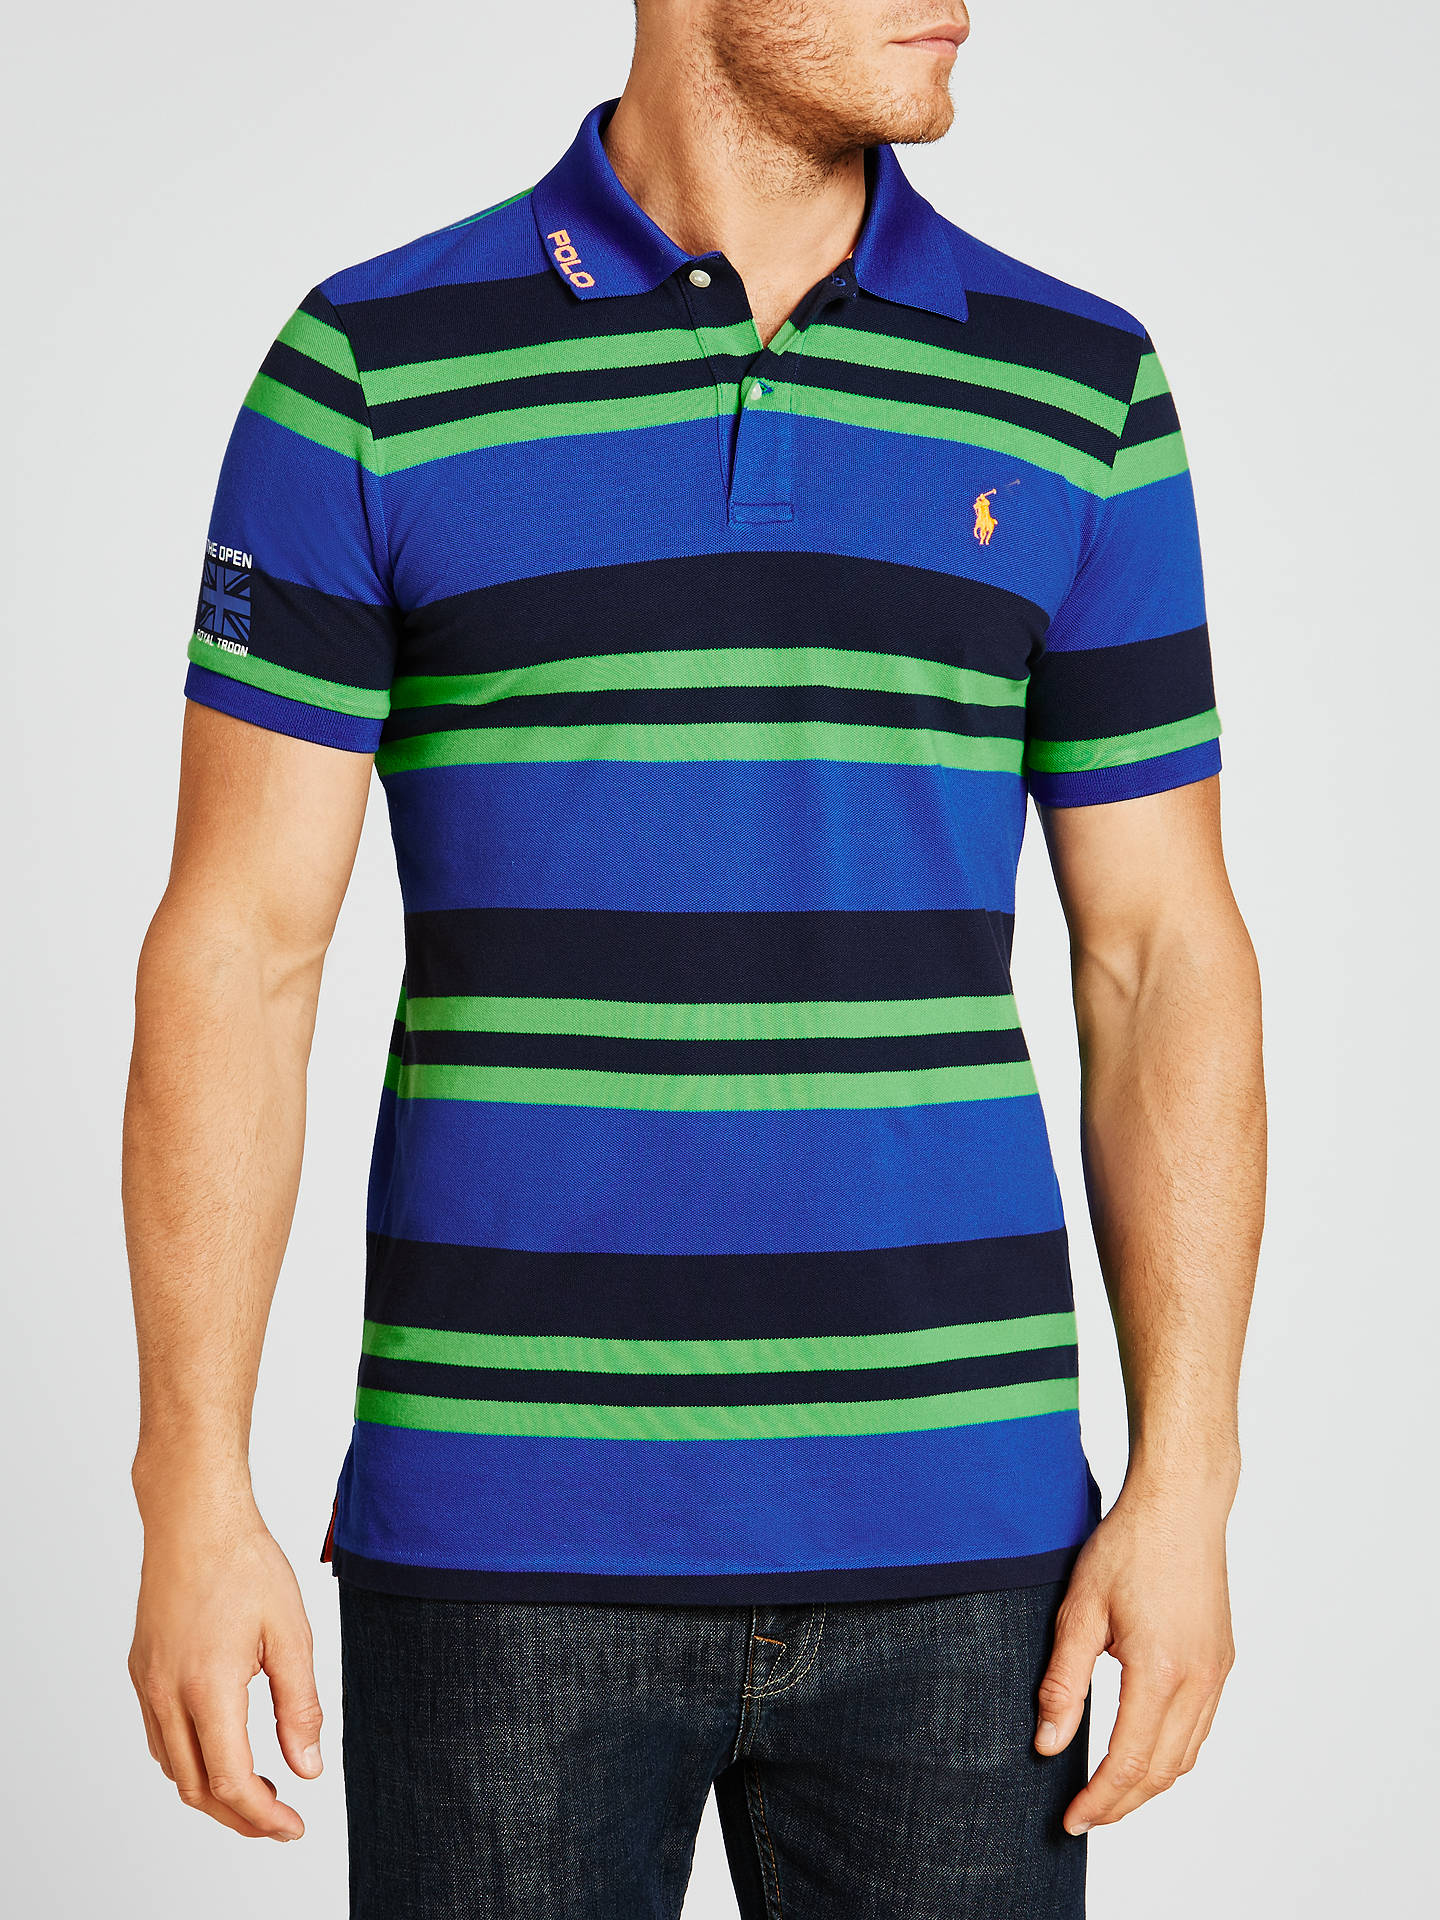 bd7ae517c ... Buy Polo Golf by Ralph Lauren 'The Open Collection' Short Sleeve Pro  Fit Polo ...